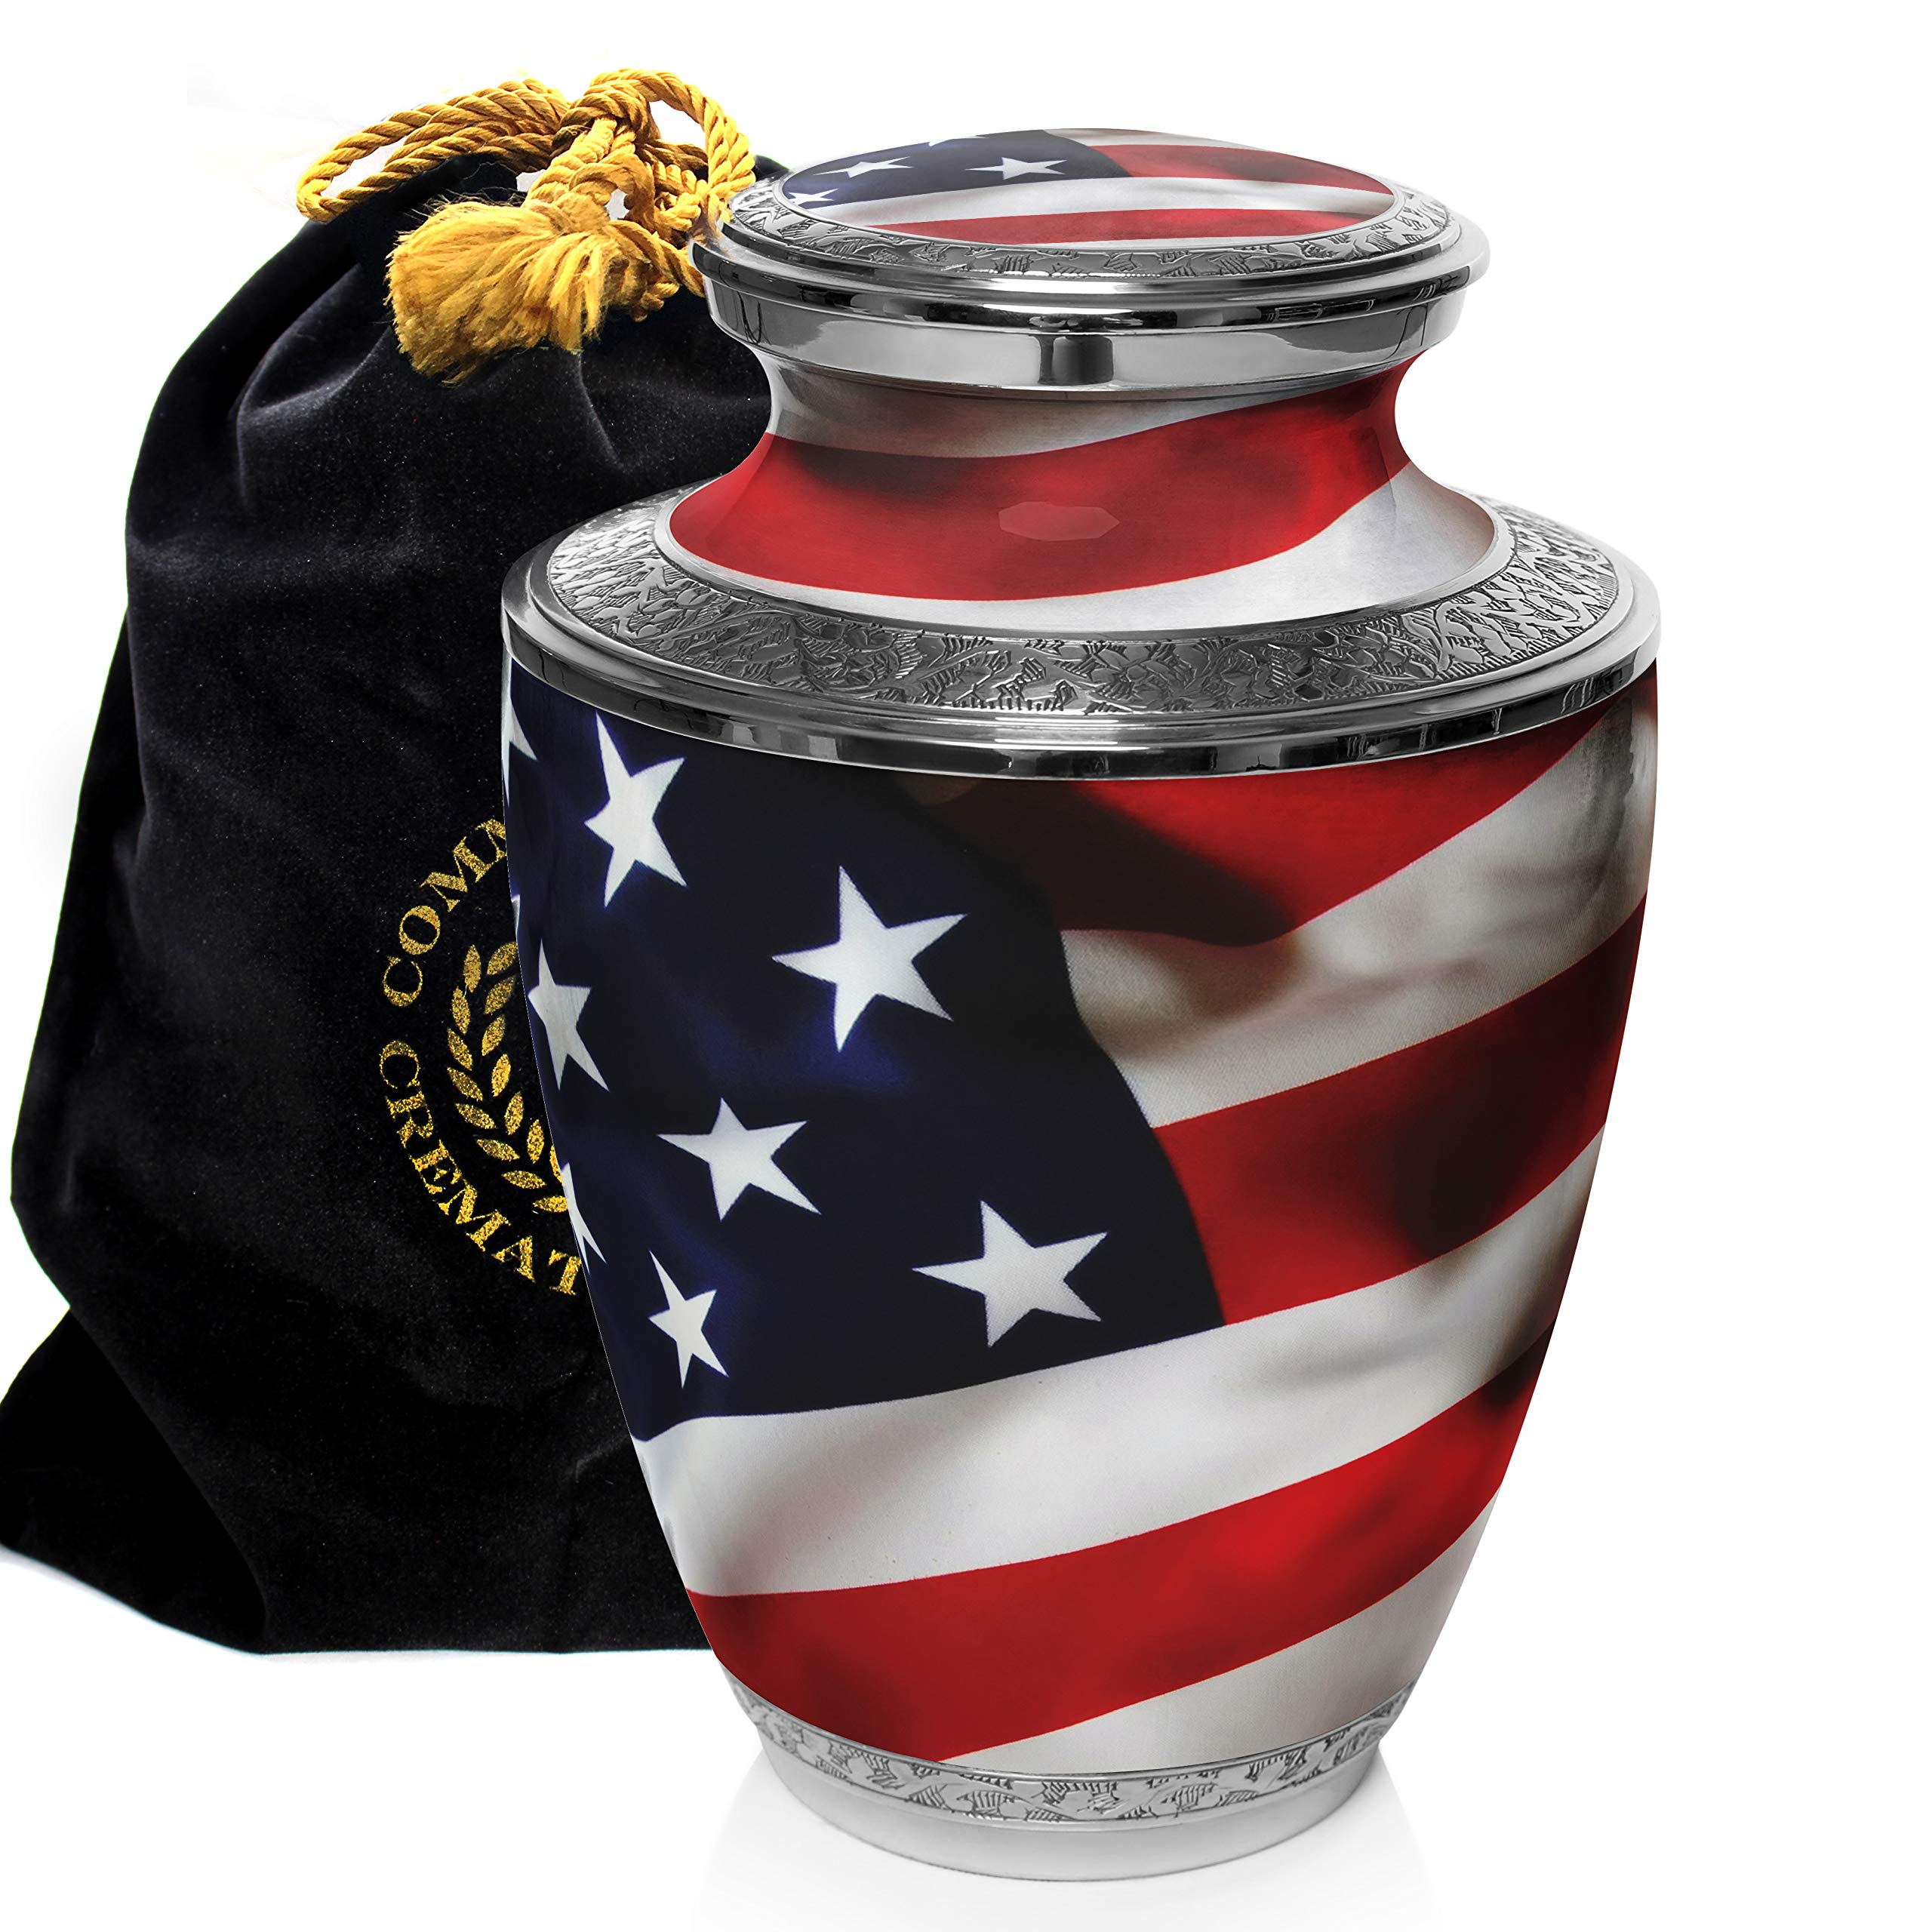 American Flag Cremation Urns for Human Ashes Adult for Funeral, Burial, Columbarium or Home, Cremation Urns for Human Ashes Adult 200 Cubic Inches, Urns for Ashes, Adult/Large by Commemorative Cremation Urns